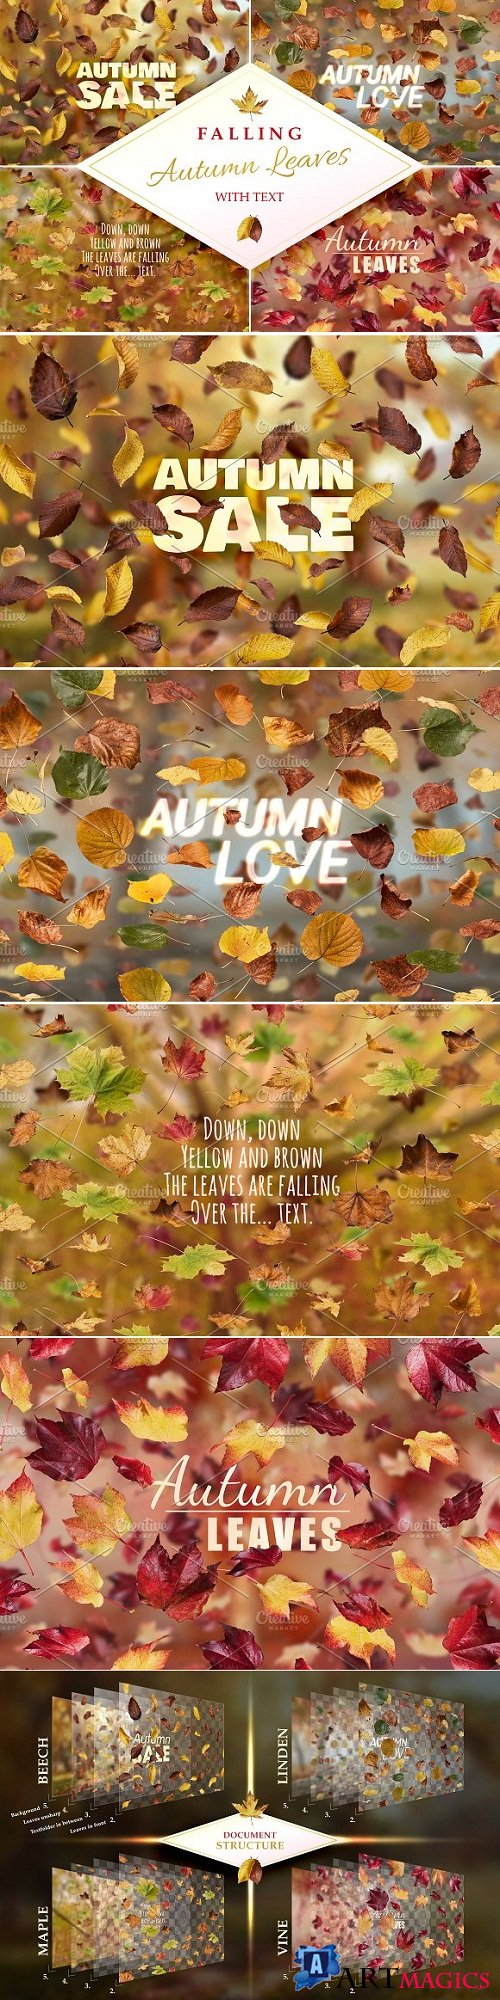 Falling Autumn Leaves with Text 449638